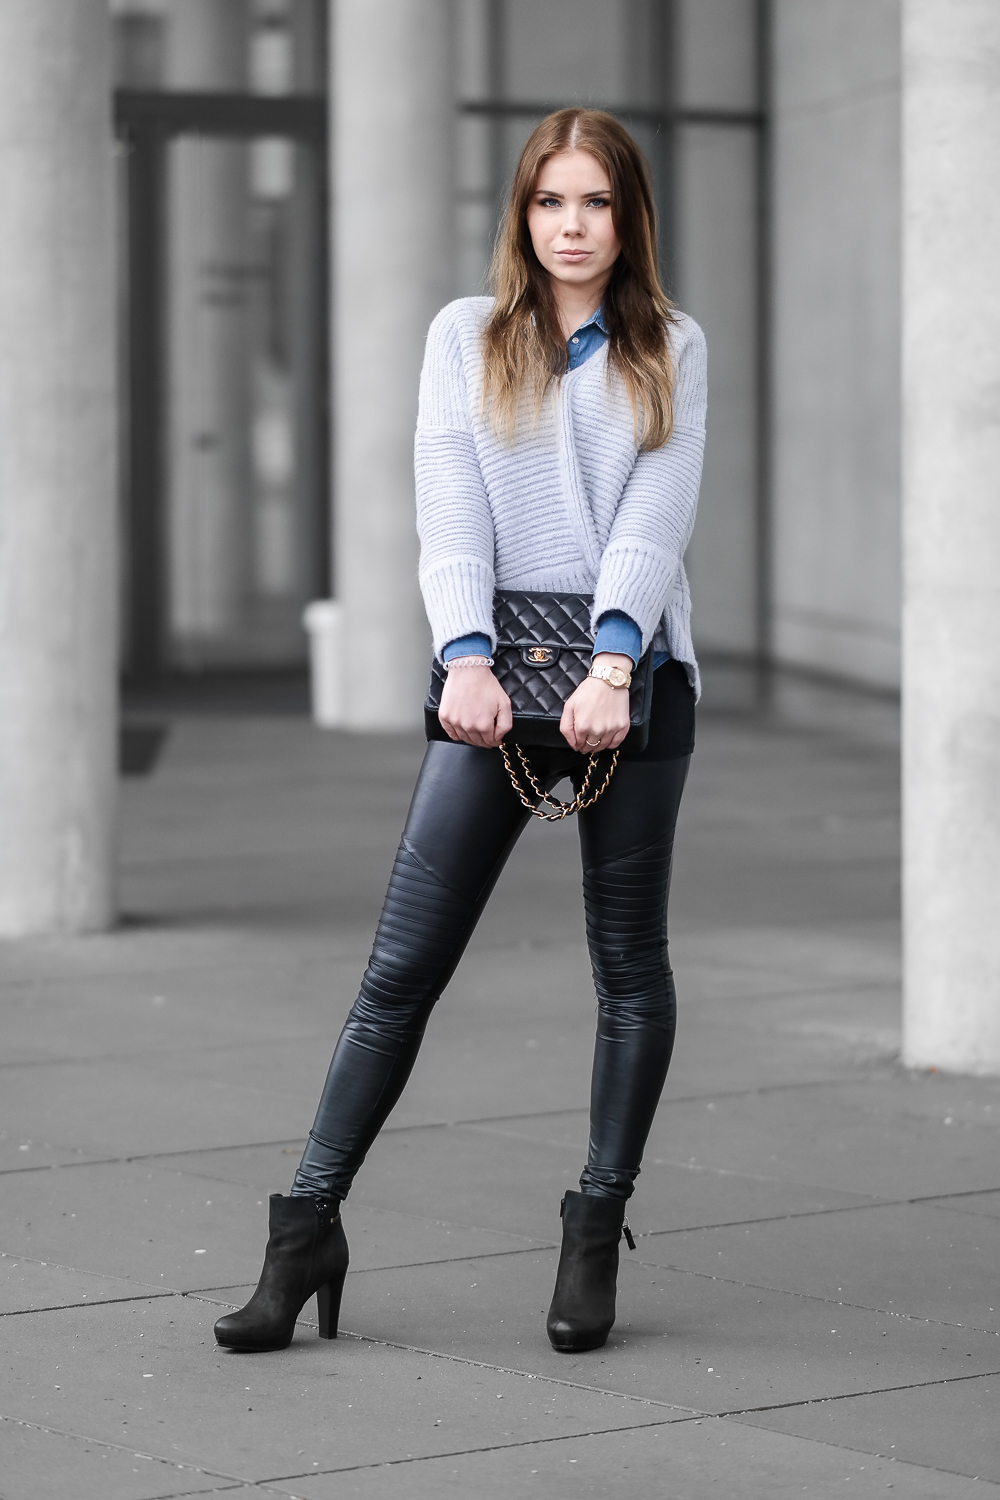 Casual-Streetstyle-Look-oversize-Sweater-Denim-Bluse-Fake-Leder-Leggings-Hohe-Stiefeletten-Chanel-Bag